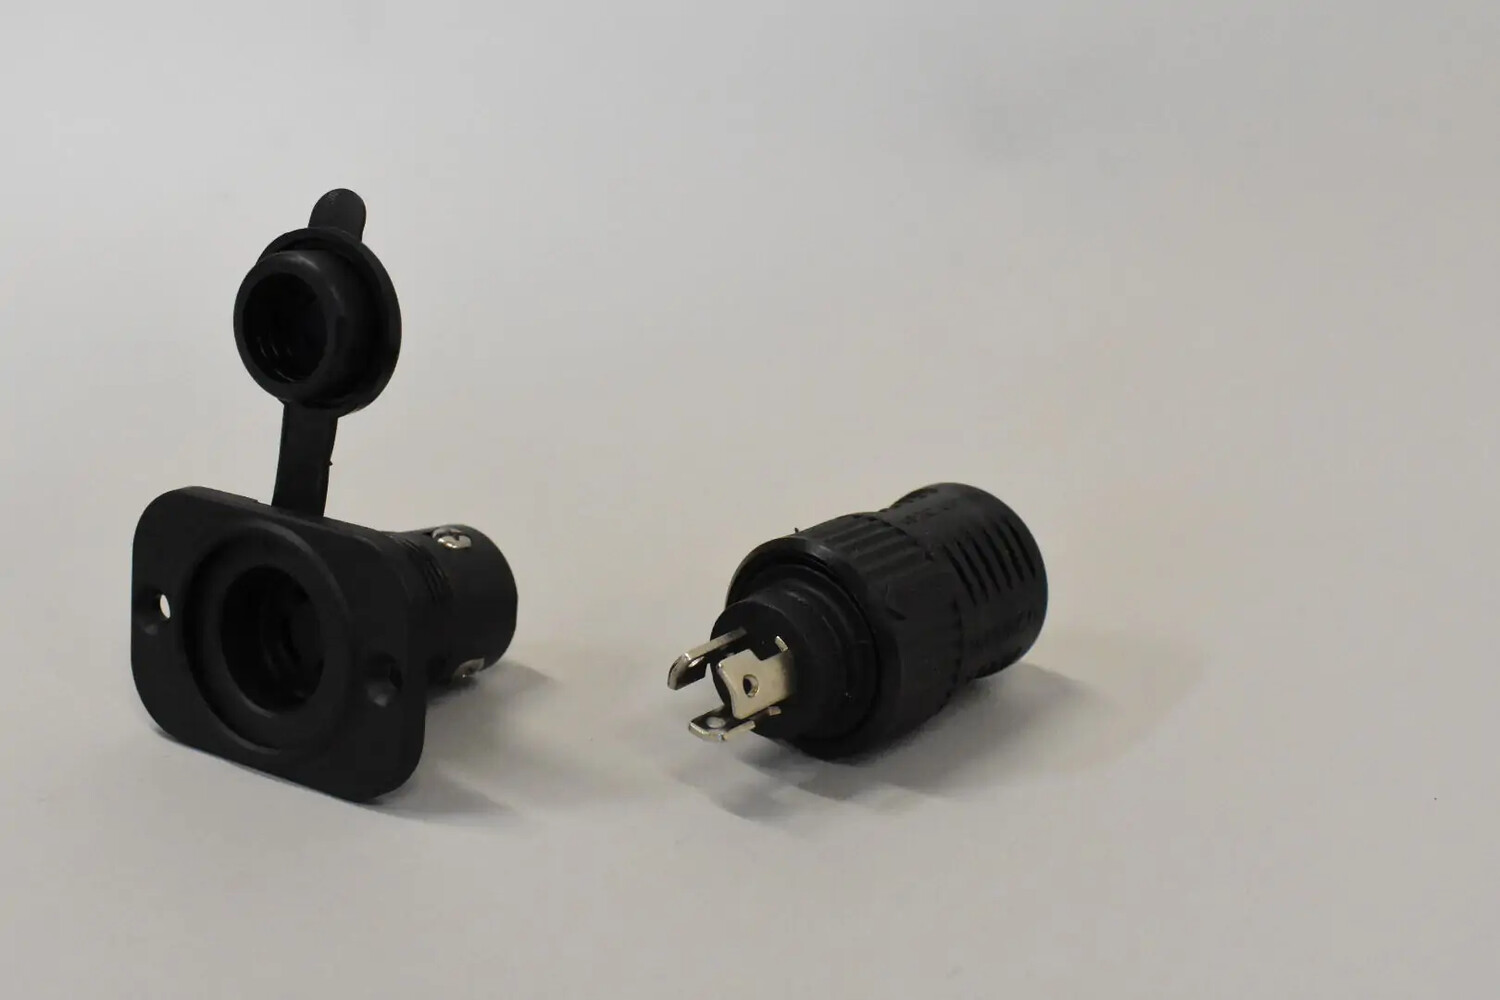 PLUG PACKAGE HEAVY-DUTY 3 PRONG